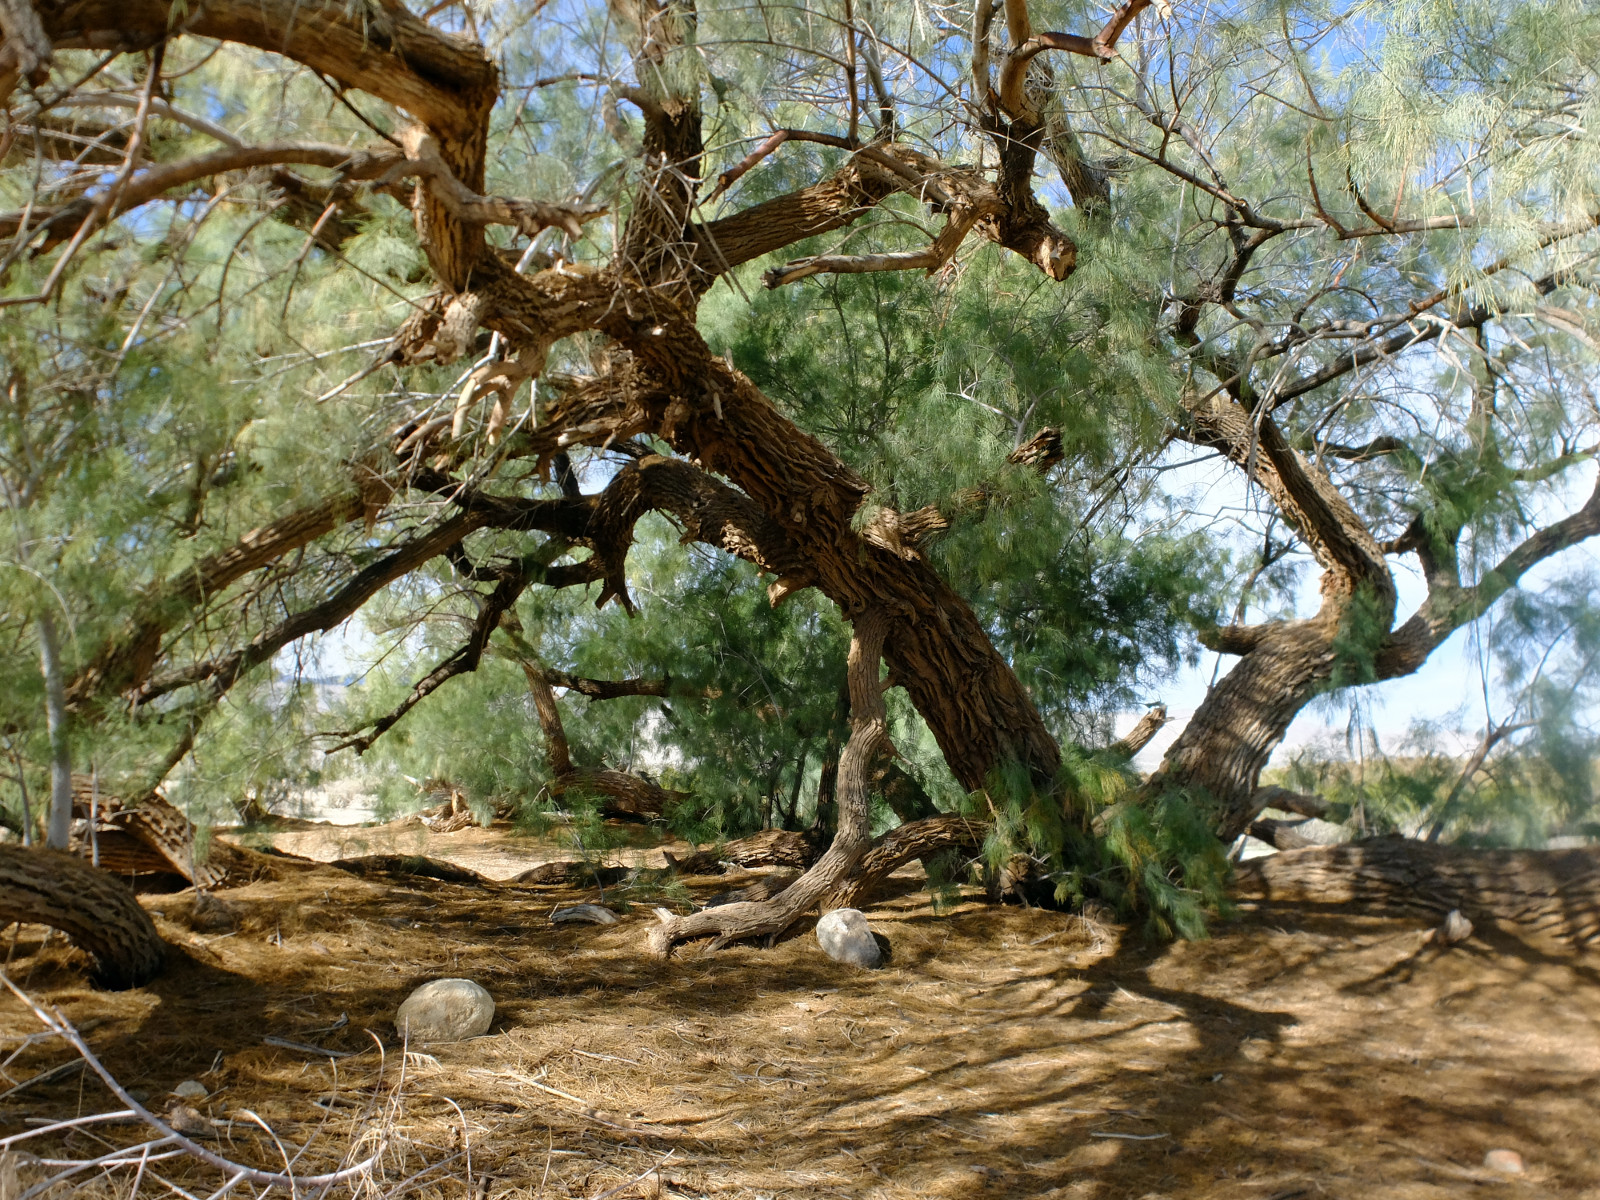 Saltcedar trees at an undisclosed location in southern California